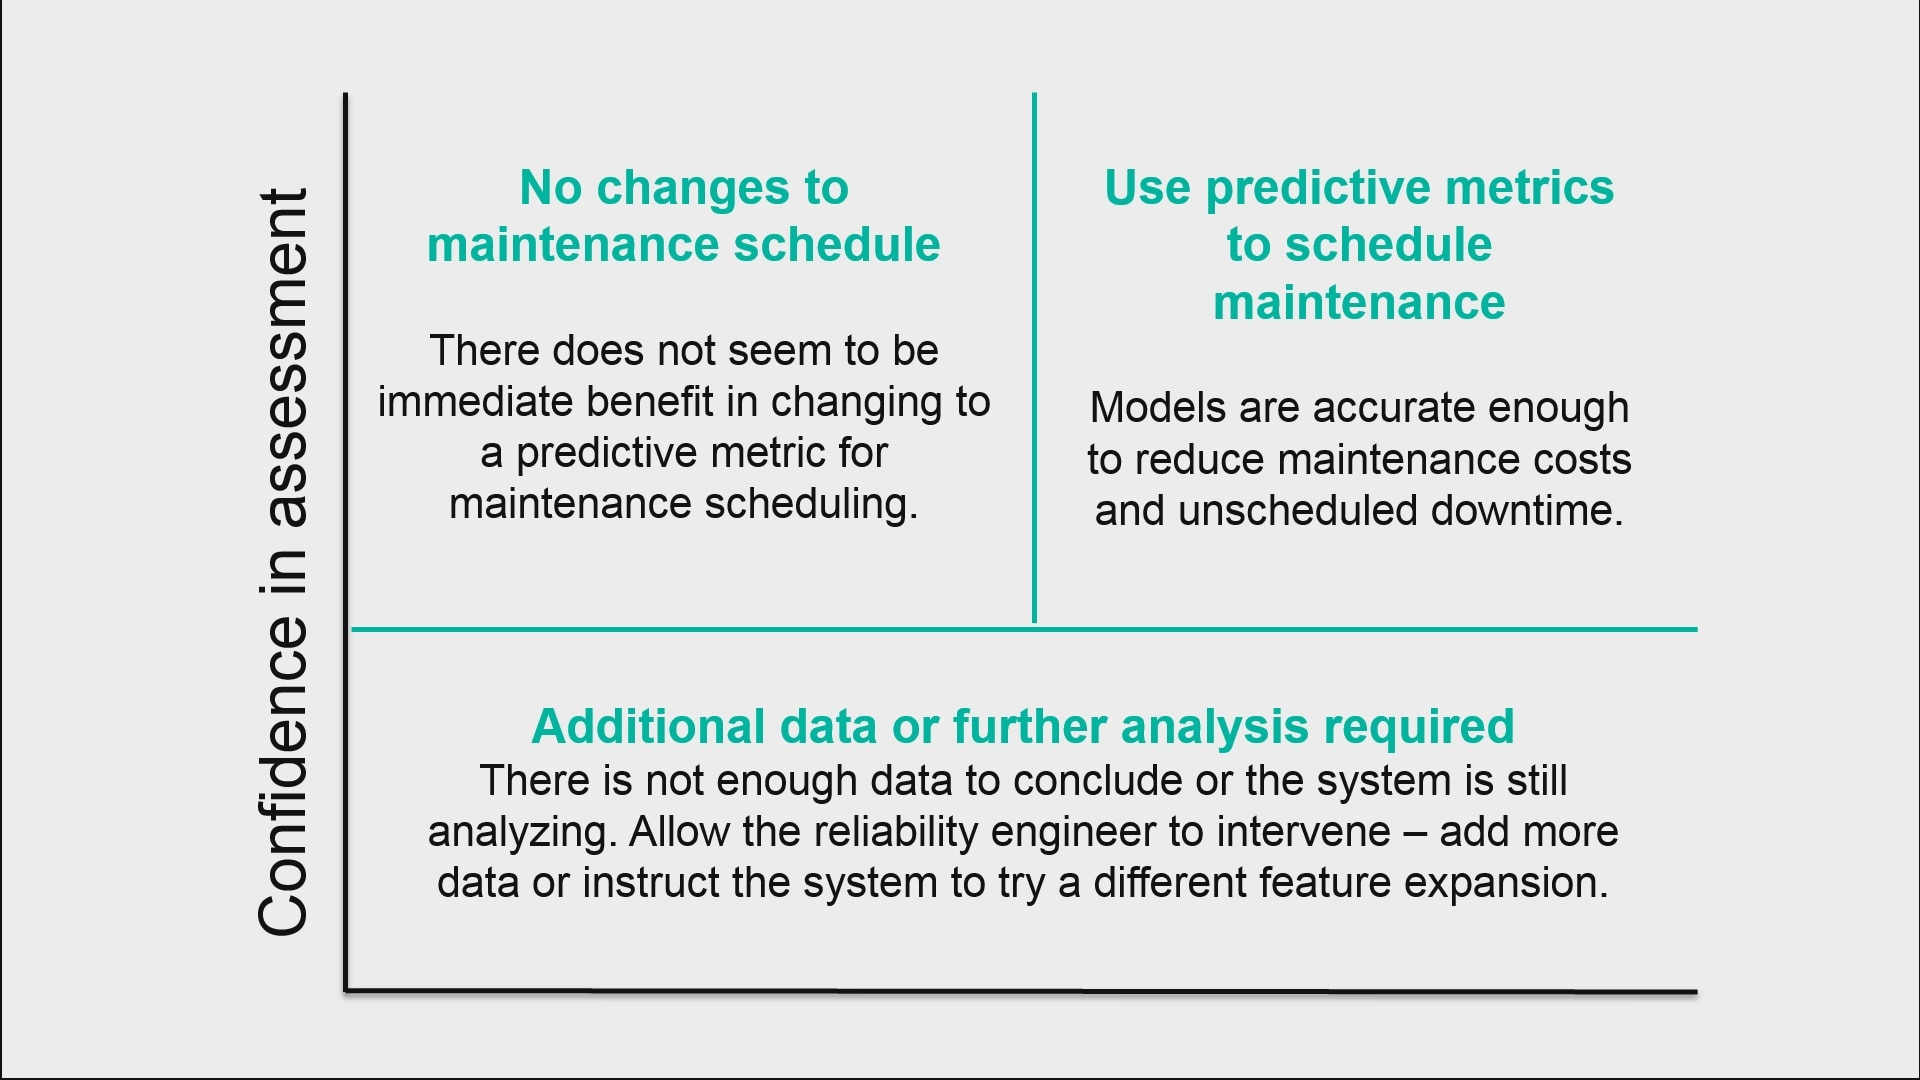 IBM Maximo APM - Predictive Maintenance Insights - Overview - United